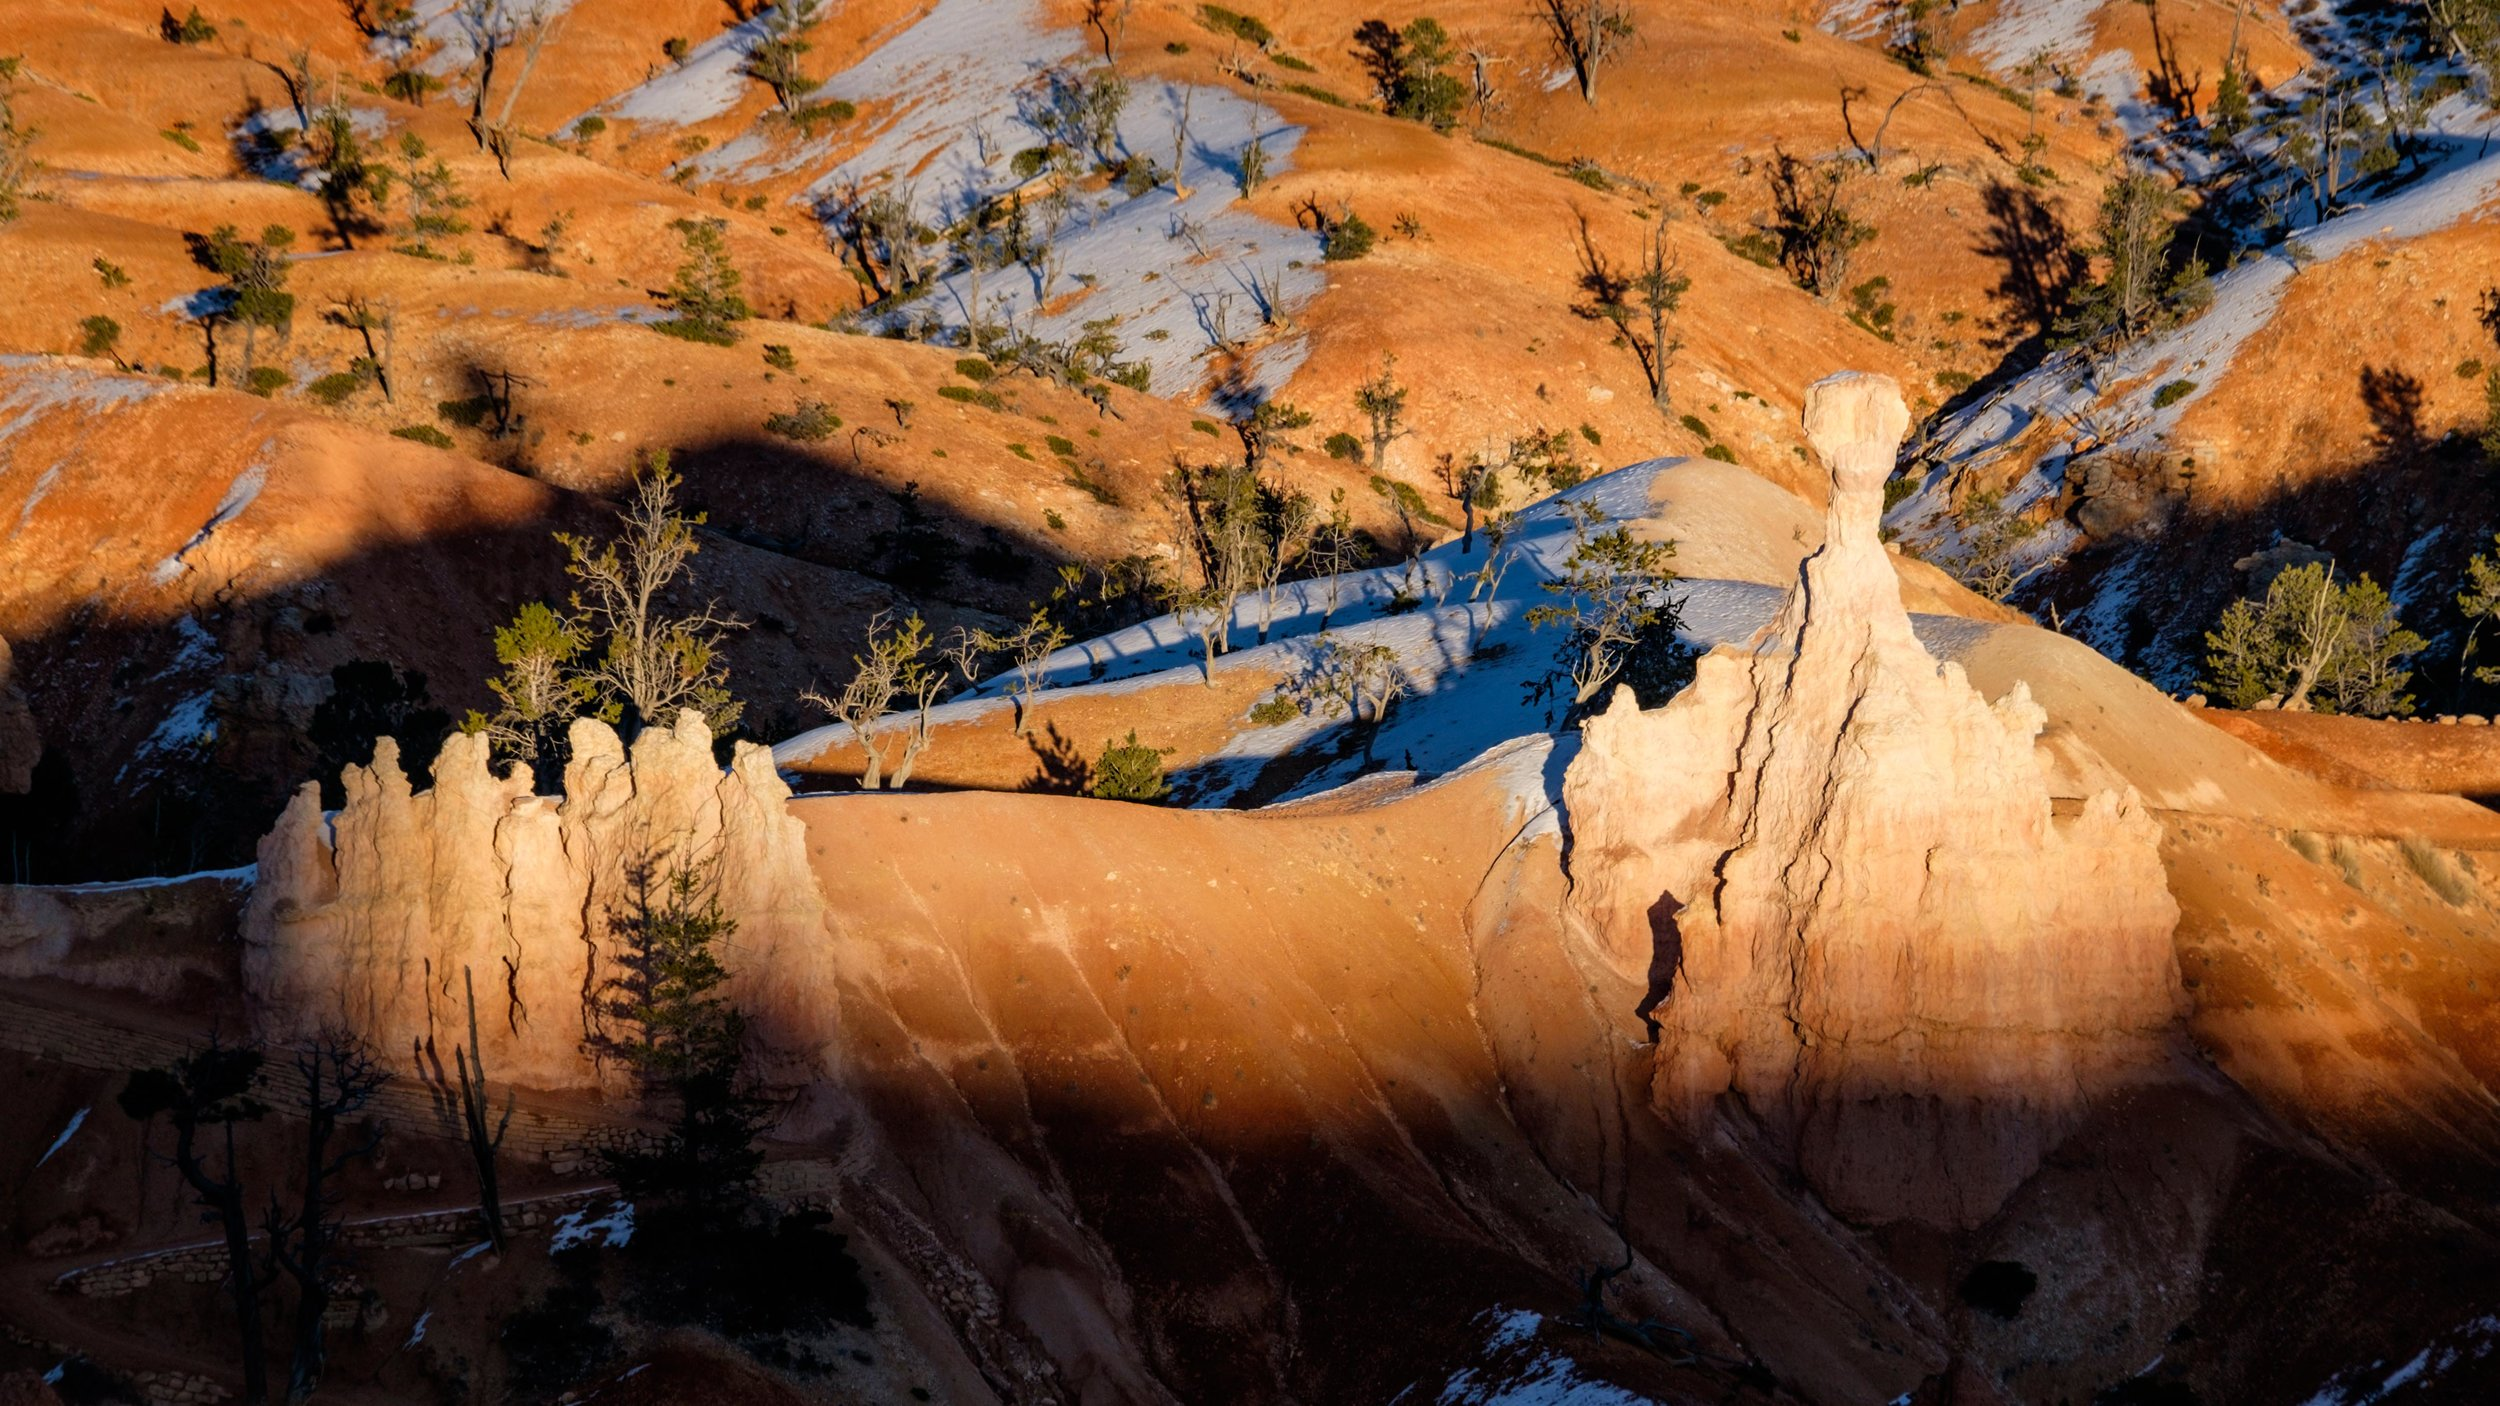 The hoodoos as seen from Sunset Point under the glow of the falling sun.